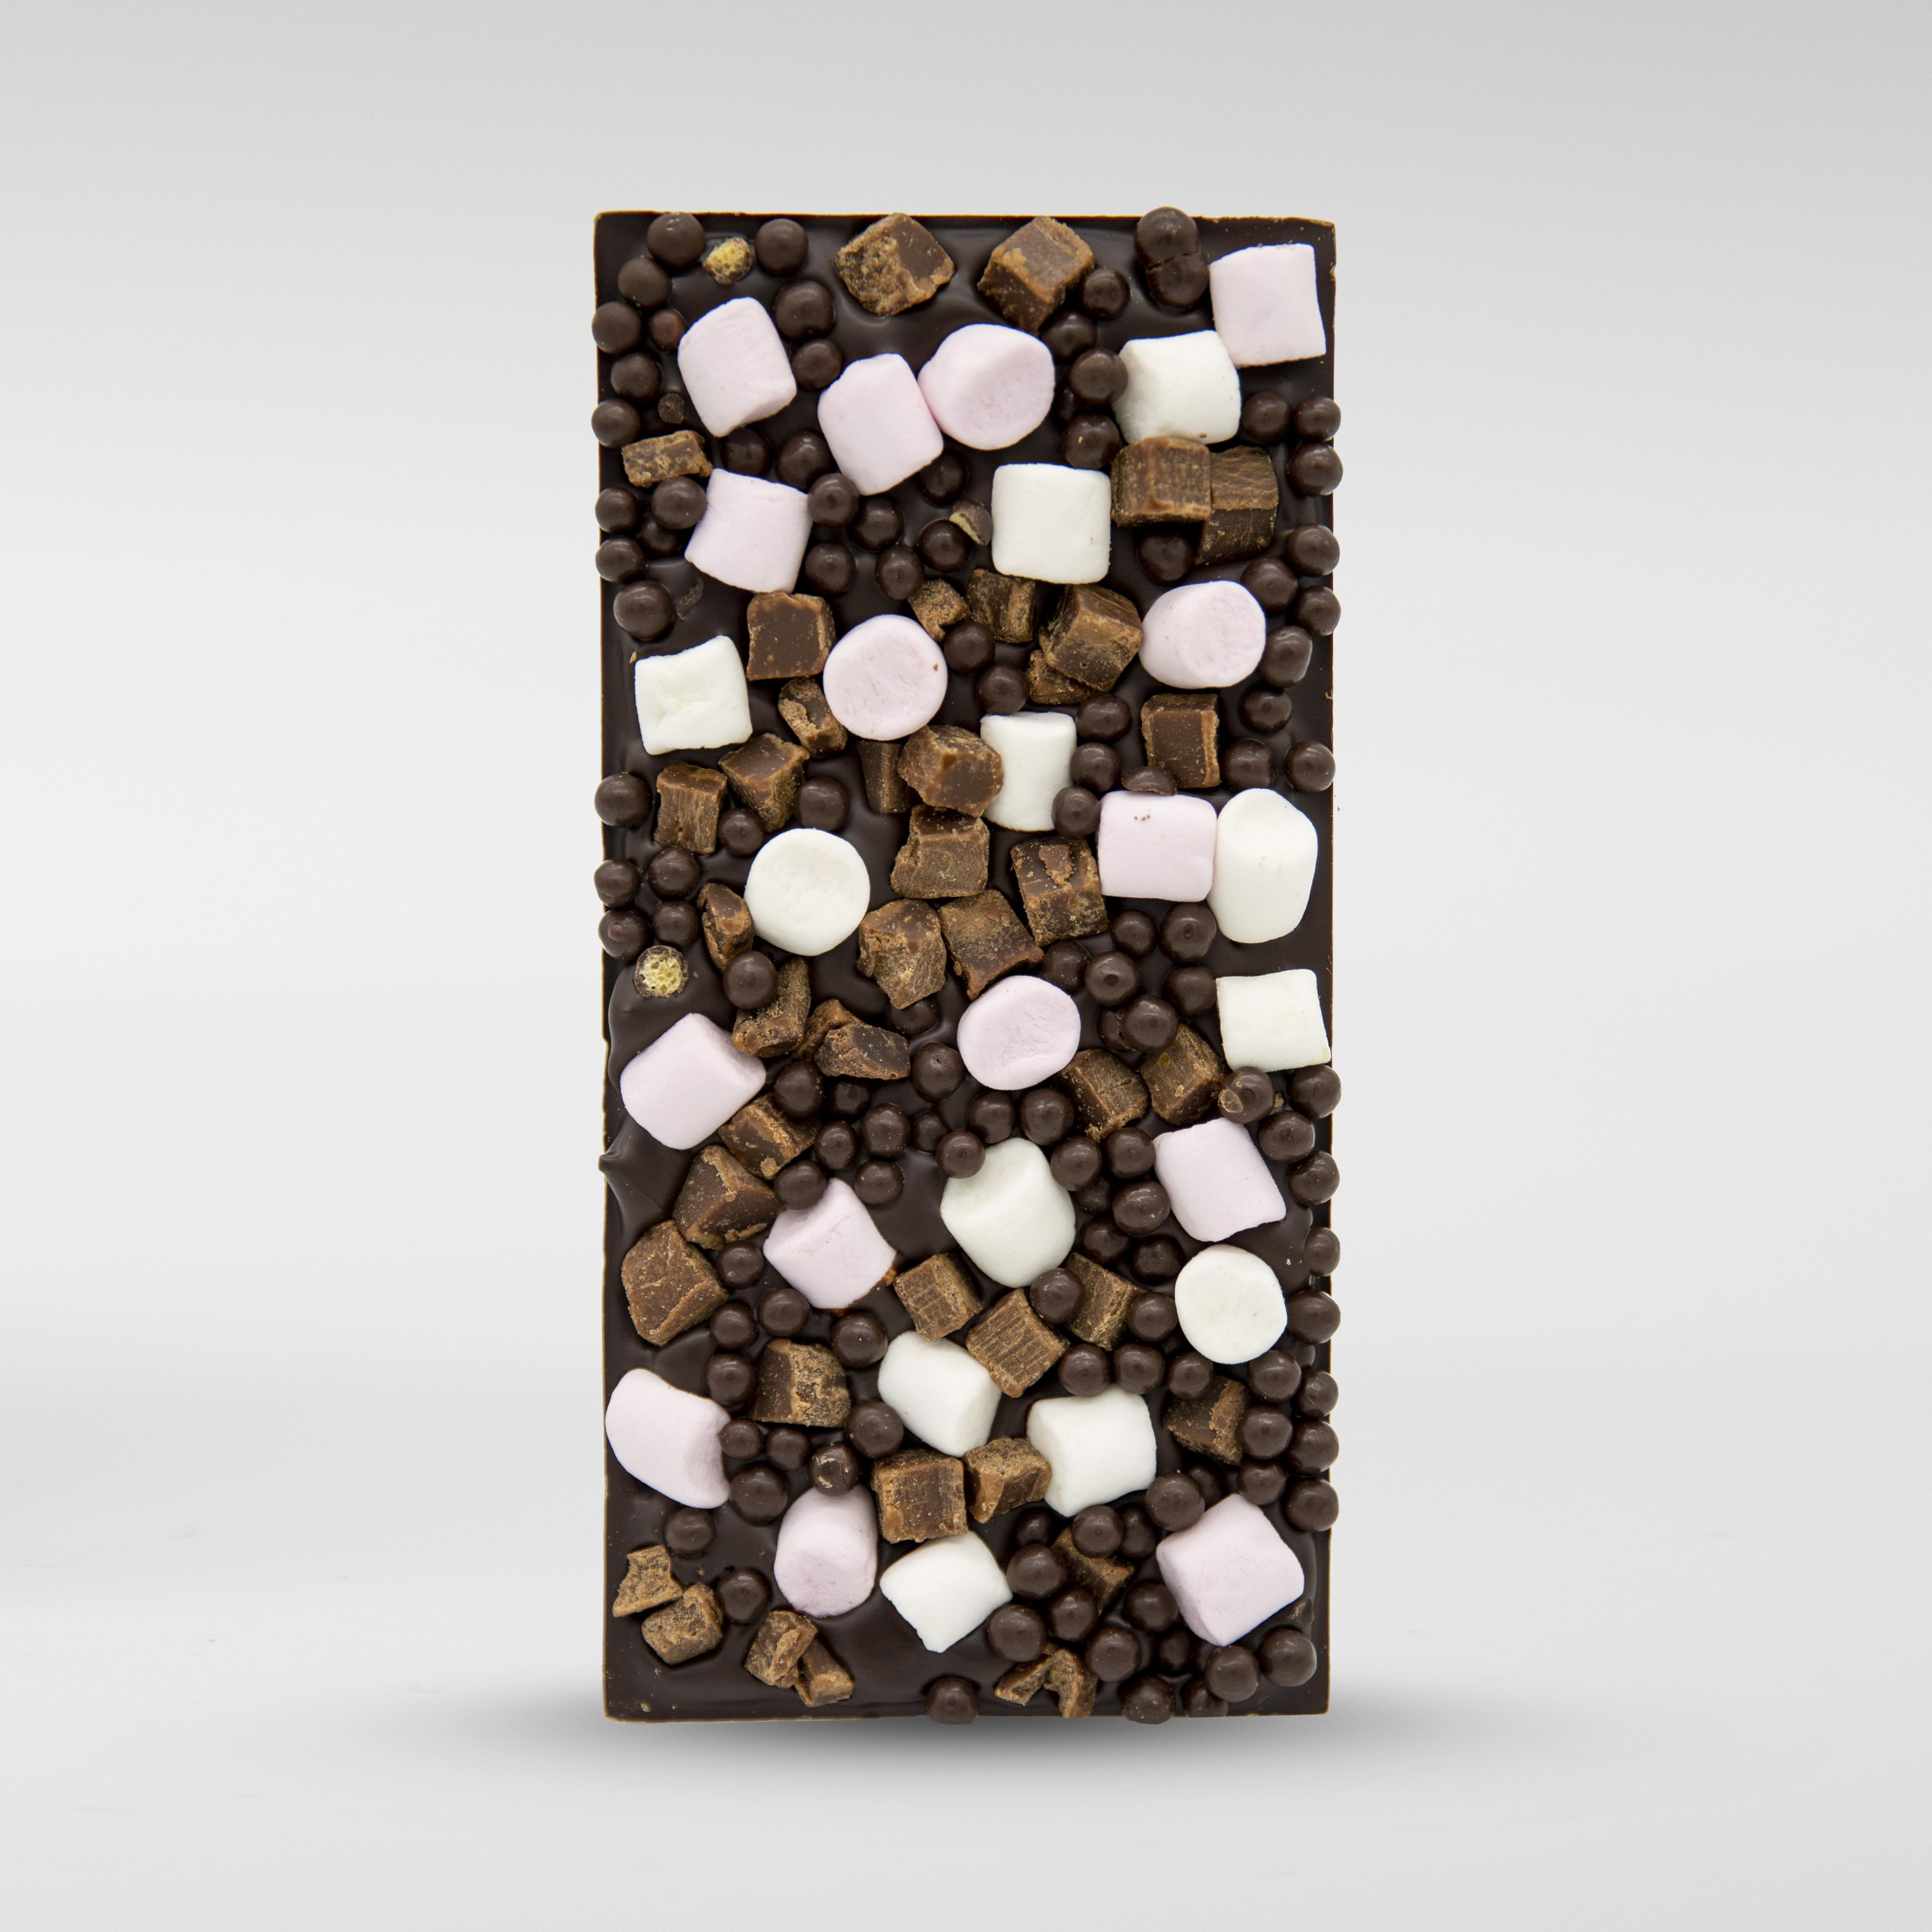 70% cocoa dark chocolate bar, top view